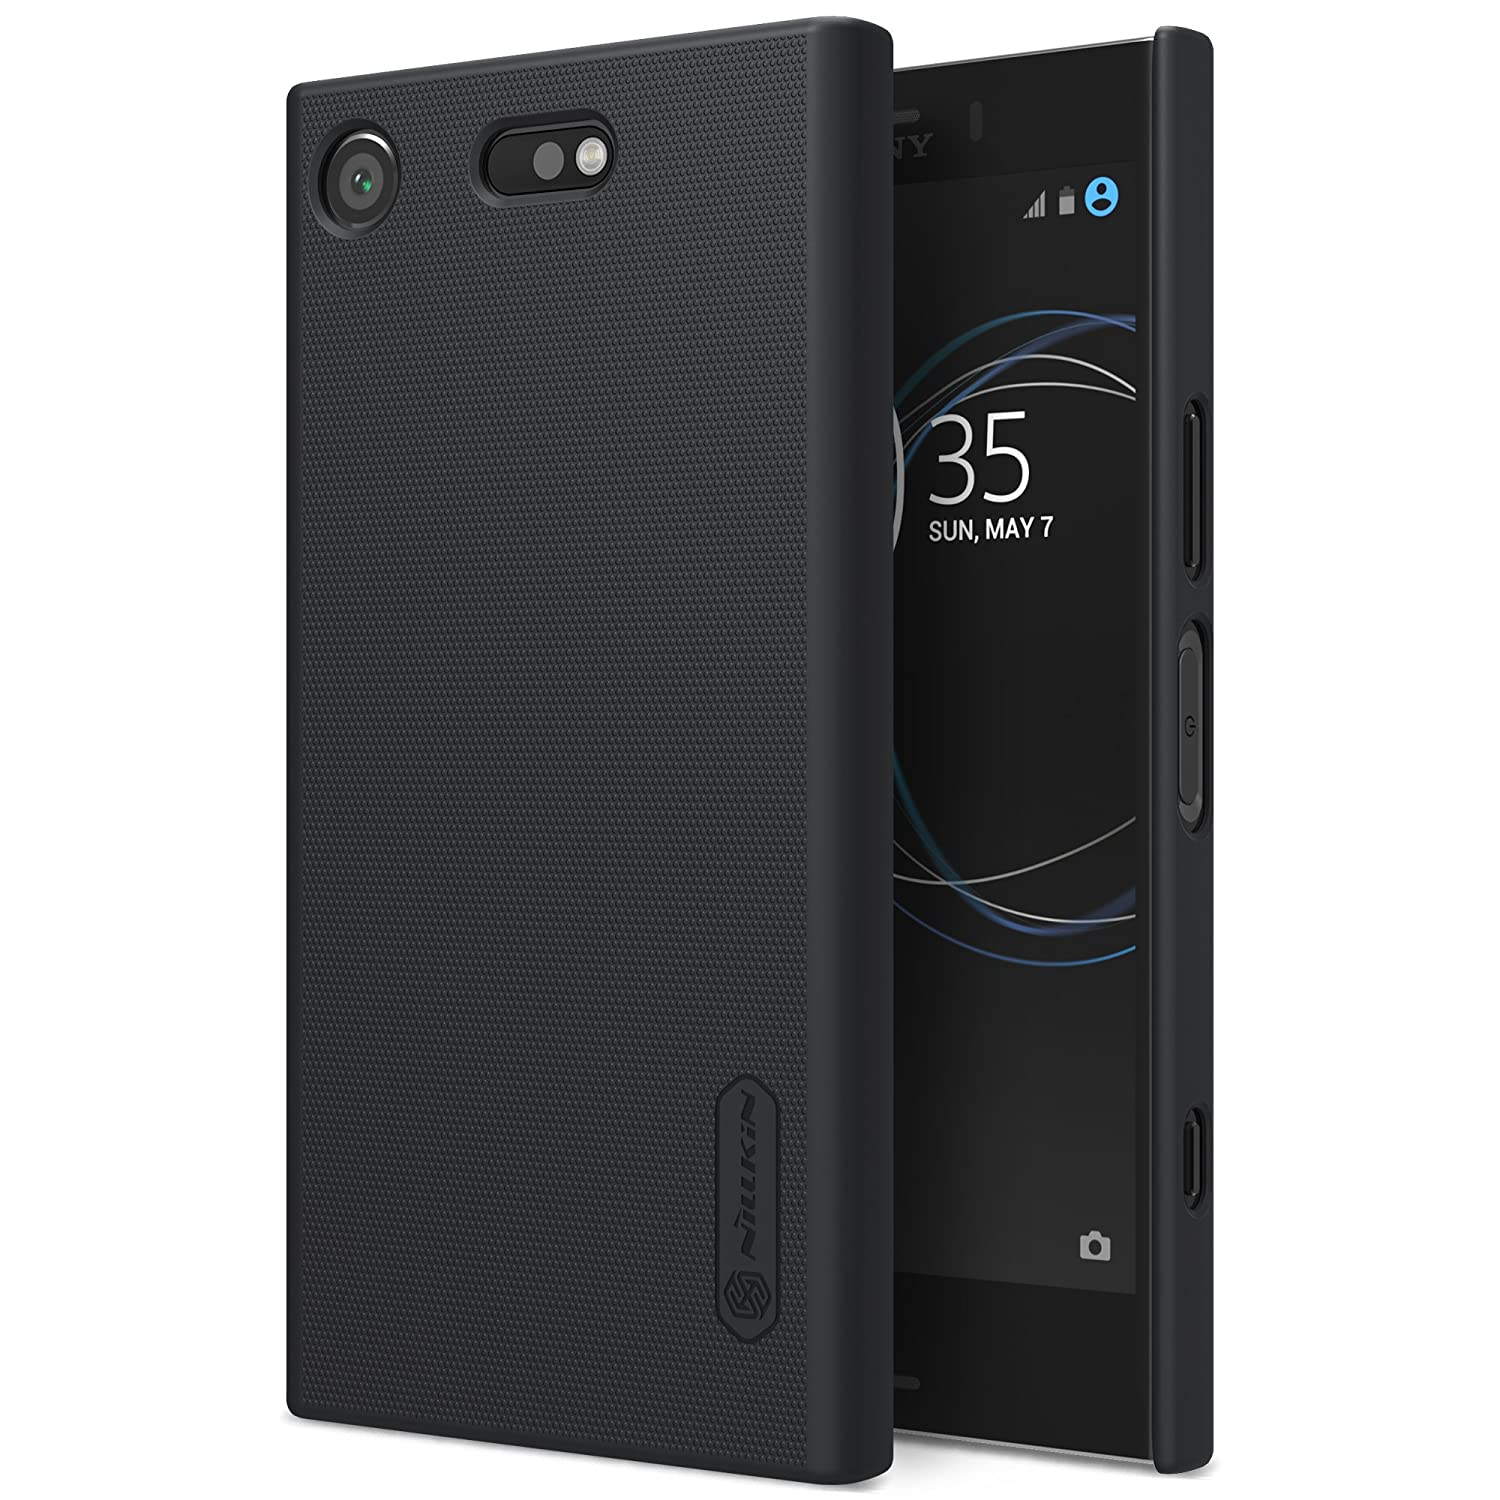 separation shoes cee93 5f62d Nillkin Sony Xperia XZ1 Compact Case, Frosted Shield Non Slip Matte Surface  Hard Case Back Cover For Sony Xperia XZ1 Compact (Only for XZ1 Compact ...